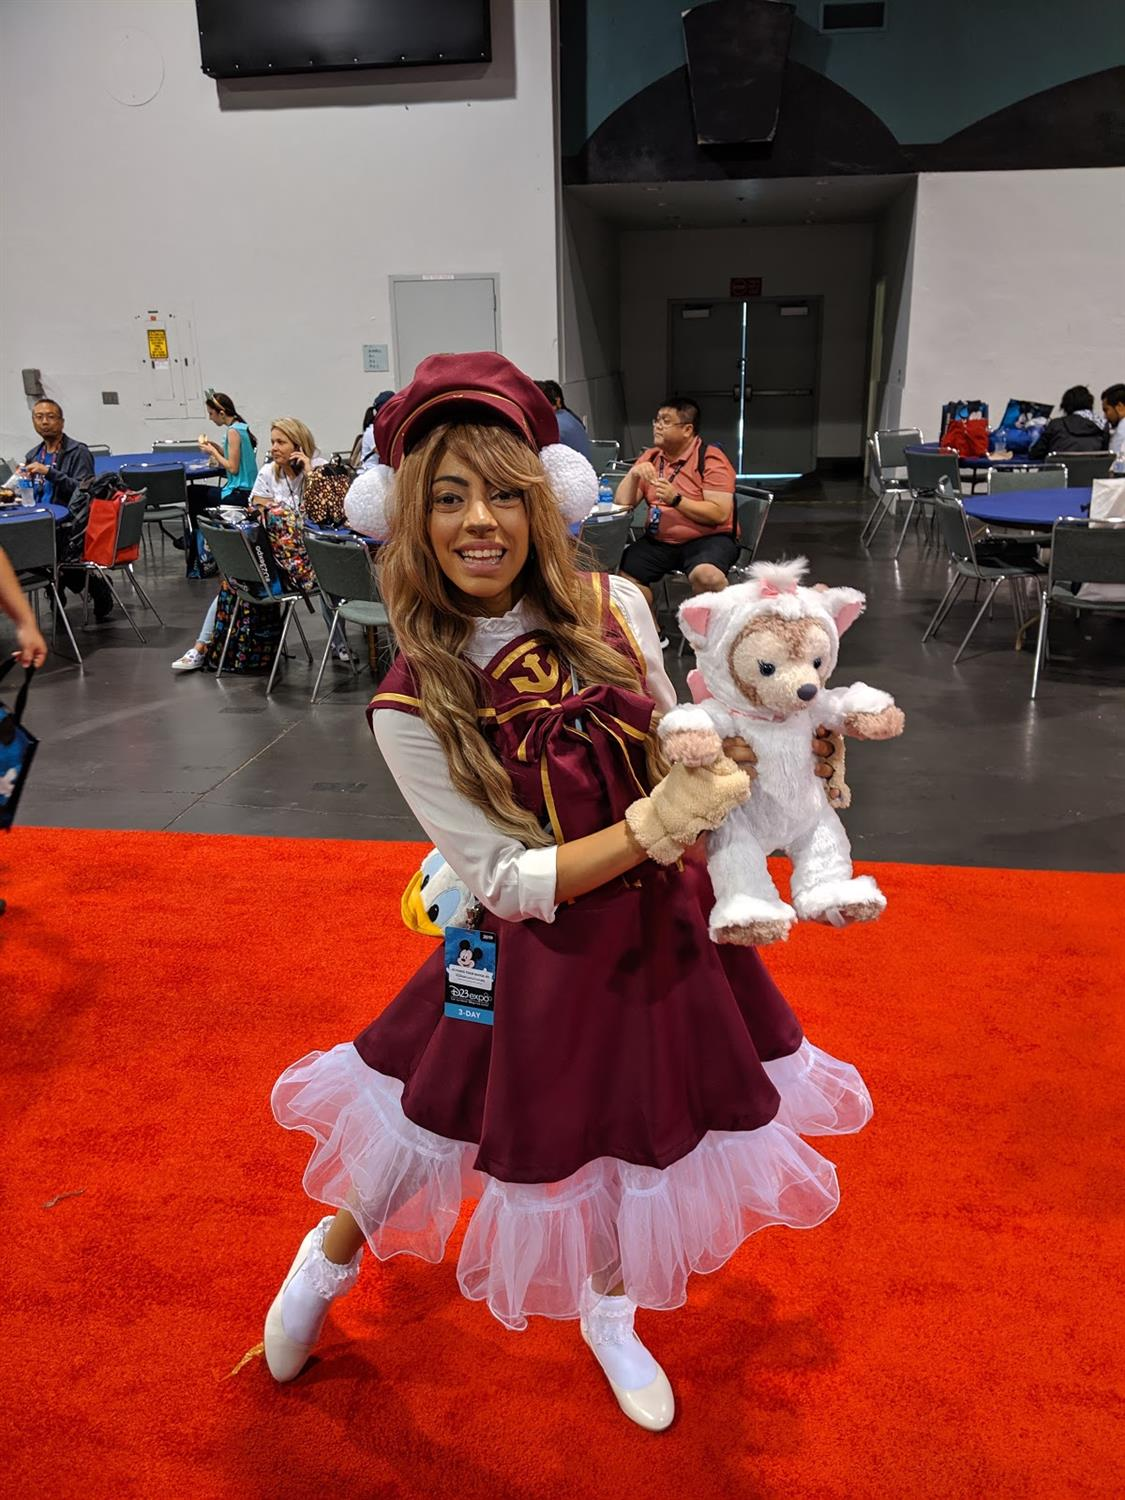 Our Favorite Disney Cosplays From D23 Expo 2019